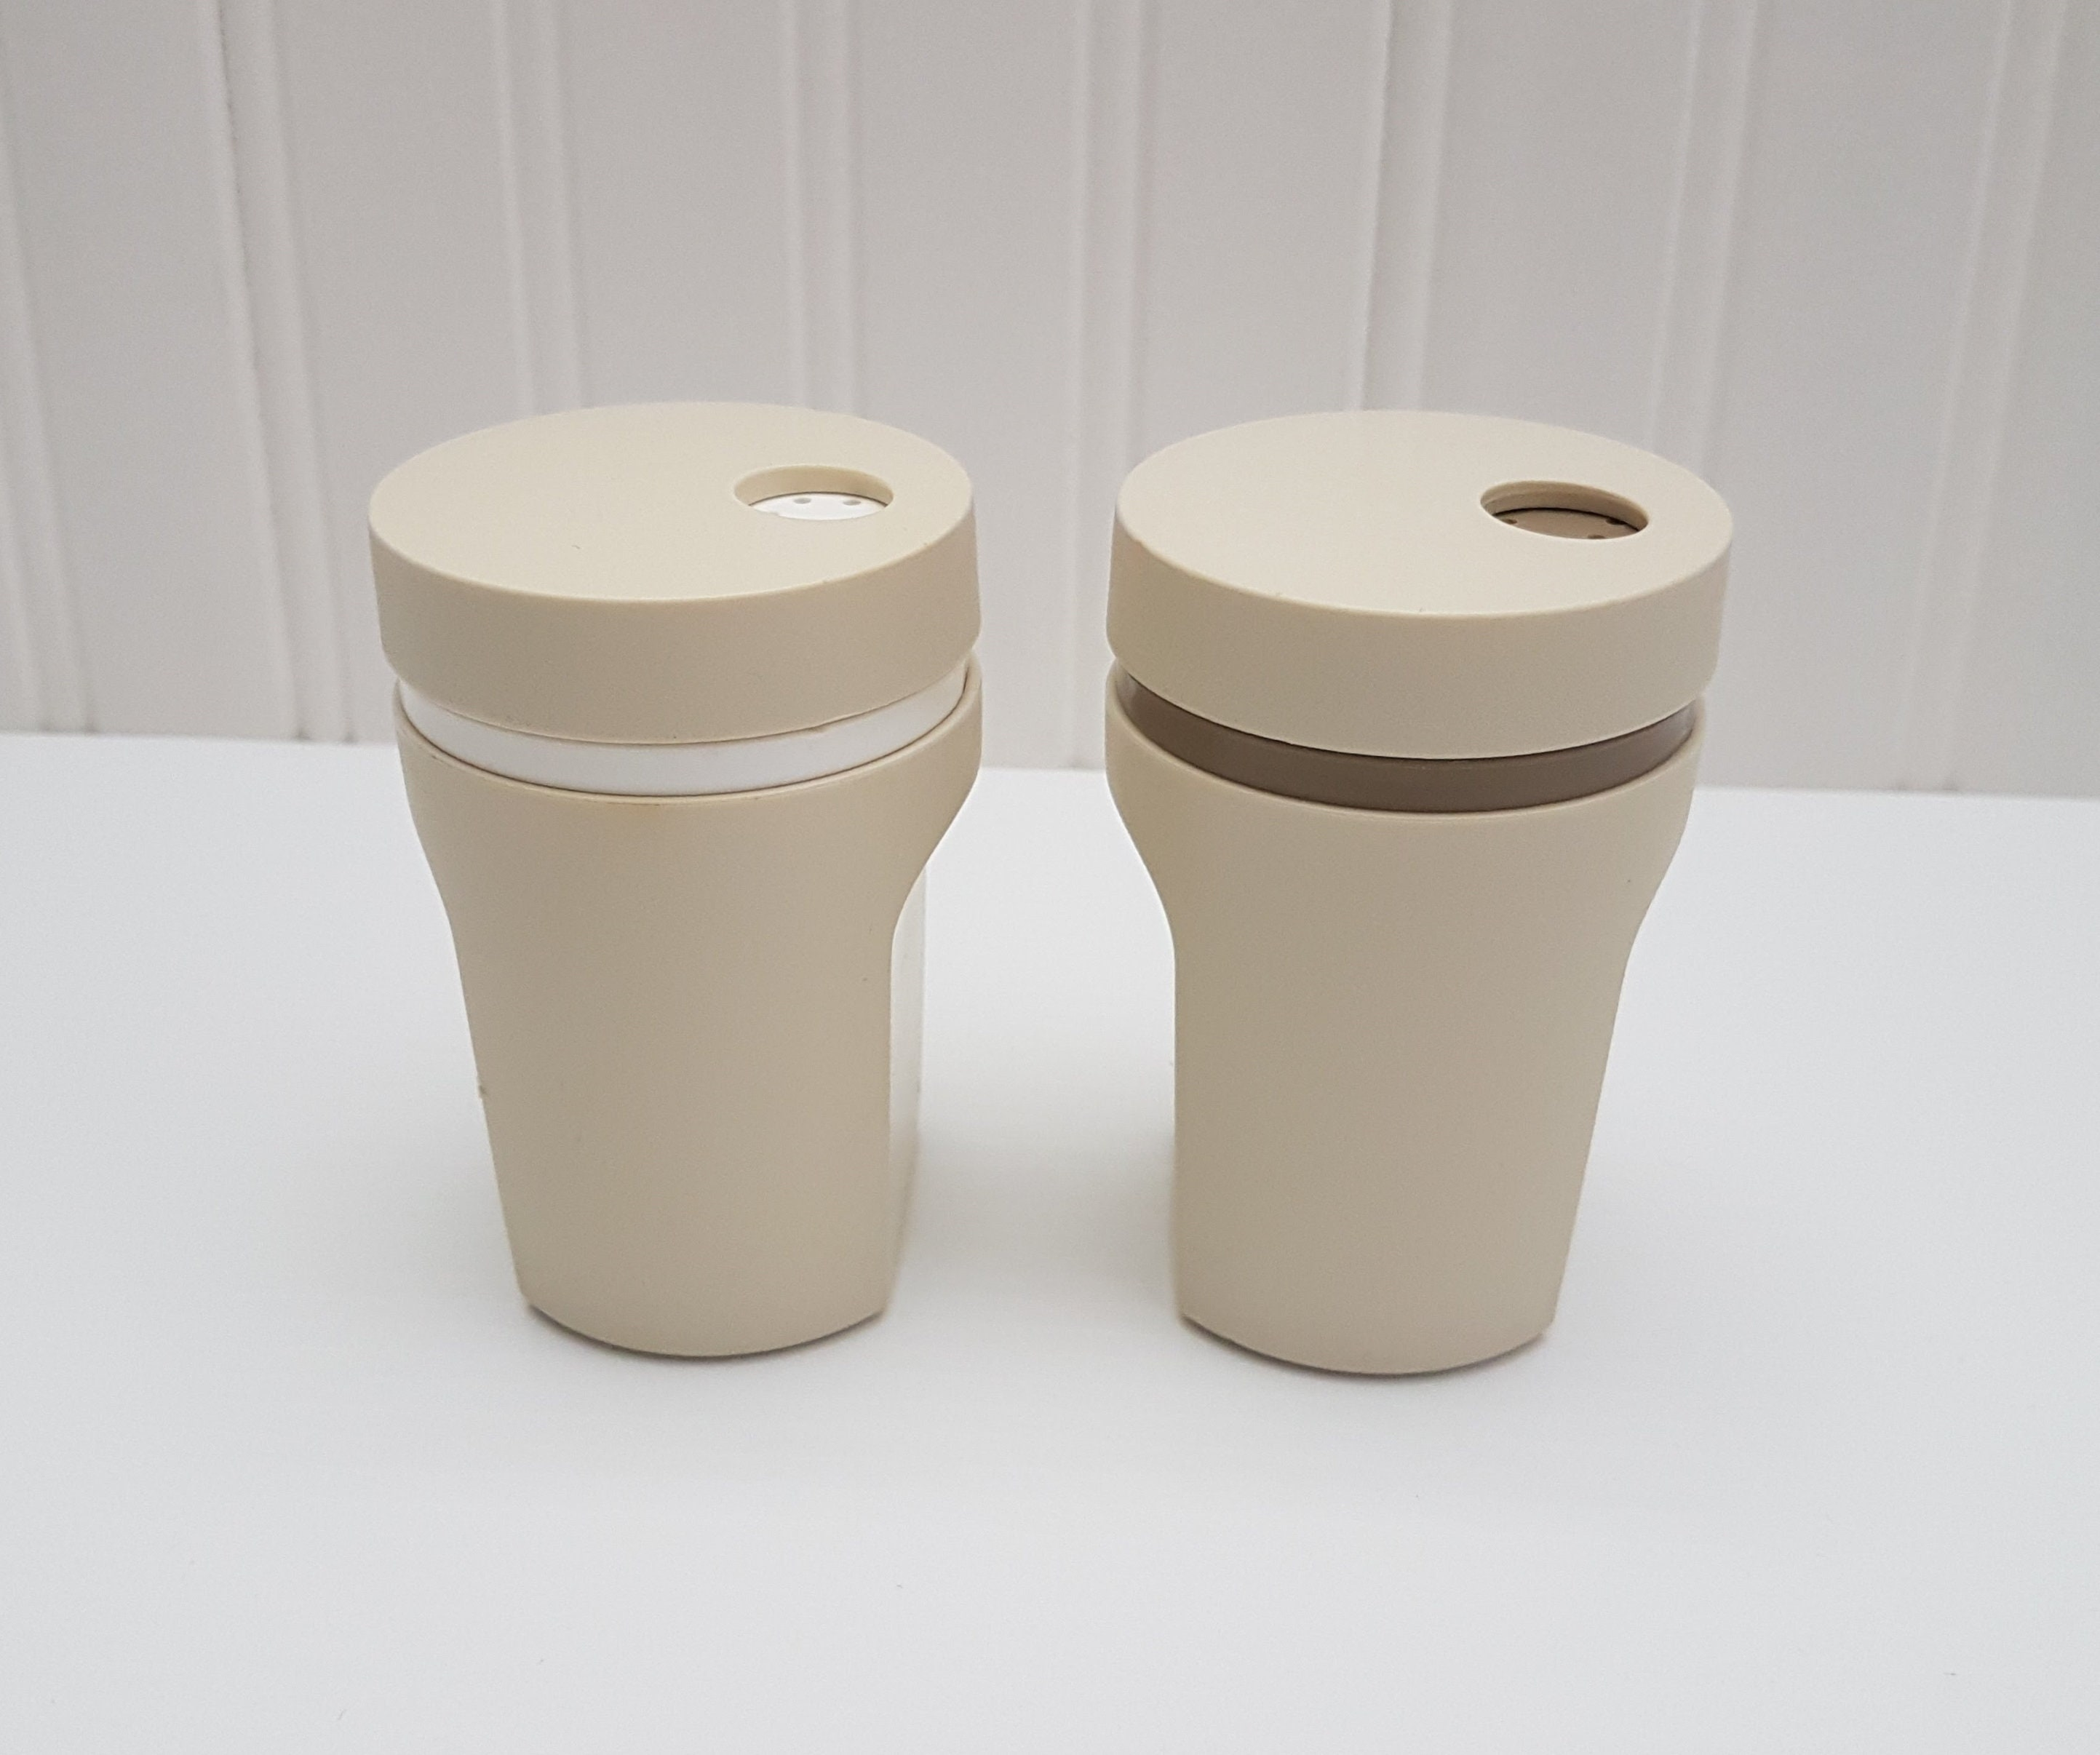 Vintage Tupperware Salt And Pepper Shakers Made In Canada Twist Top Lid Patio Picnic Camping White Brown Almond Pair Set Kitchen